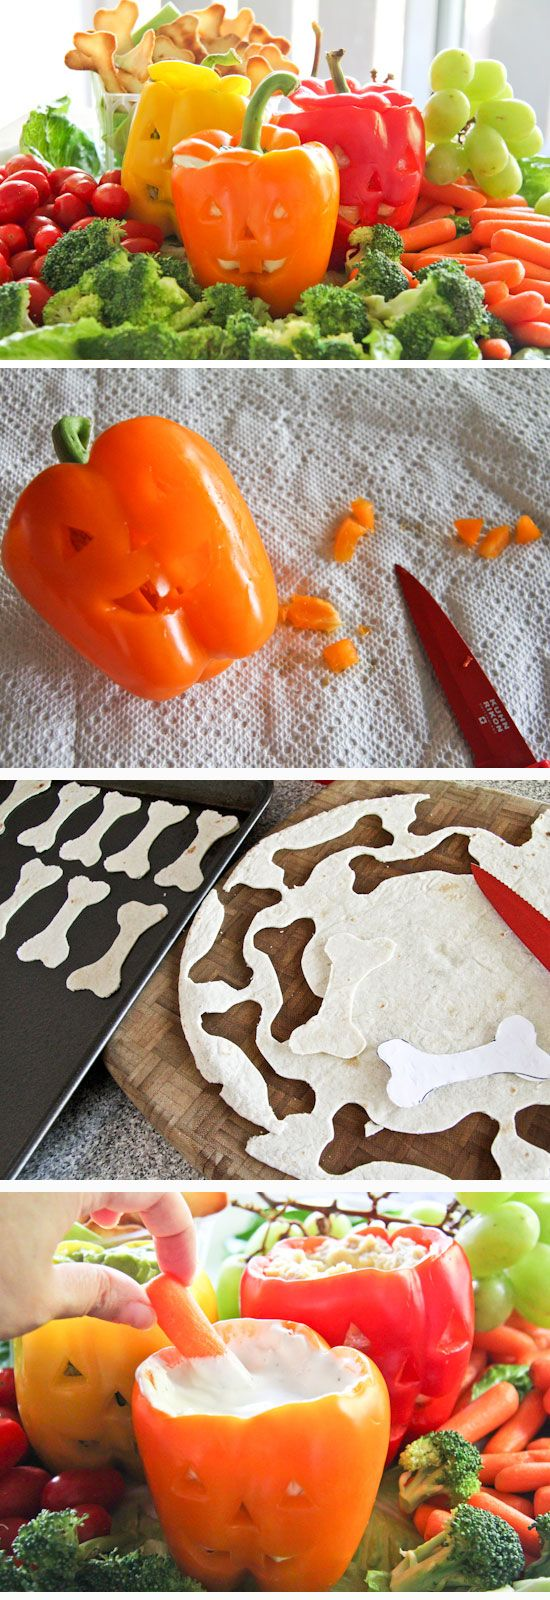 341 best Healthy Halloween Ideas images on Pinterest